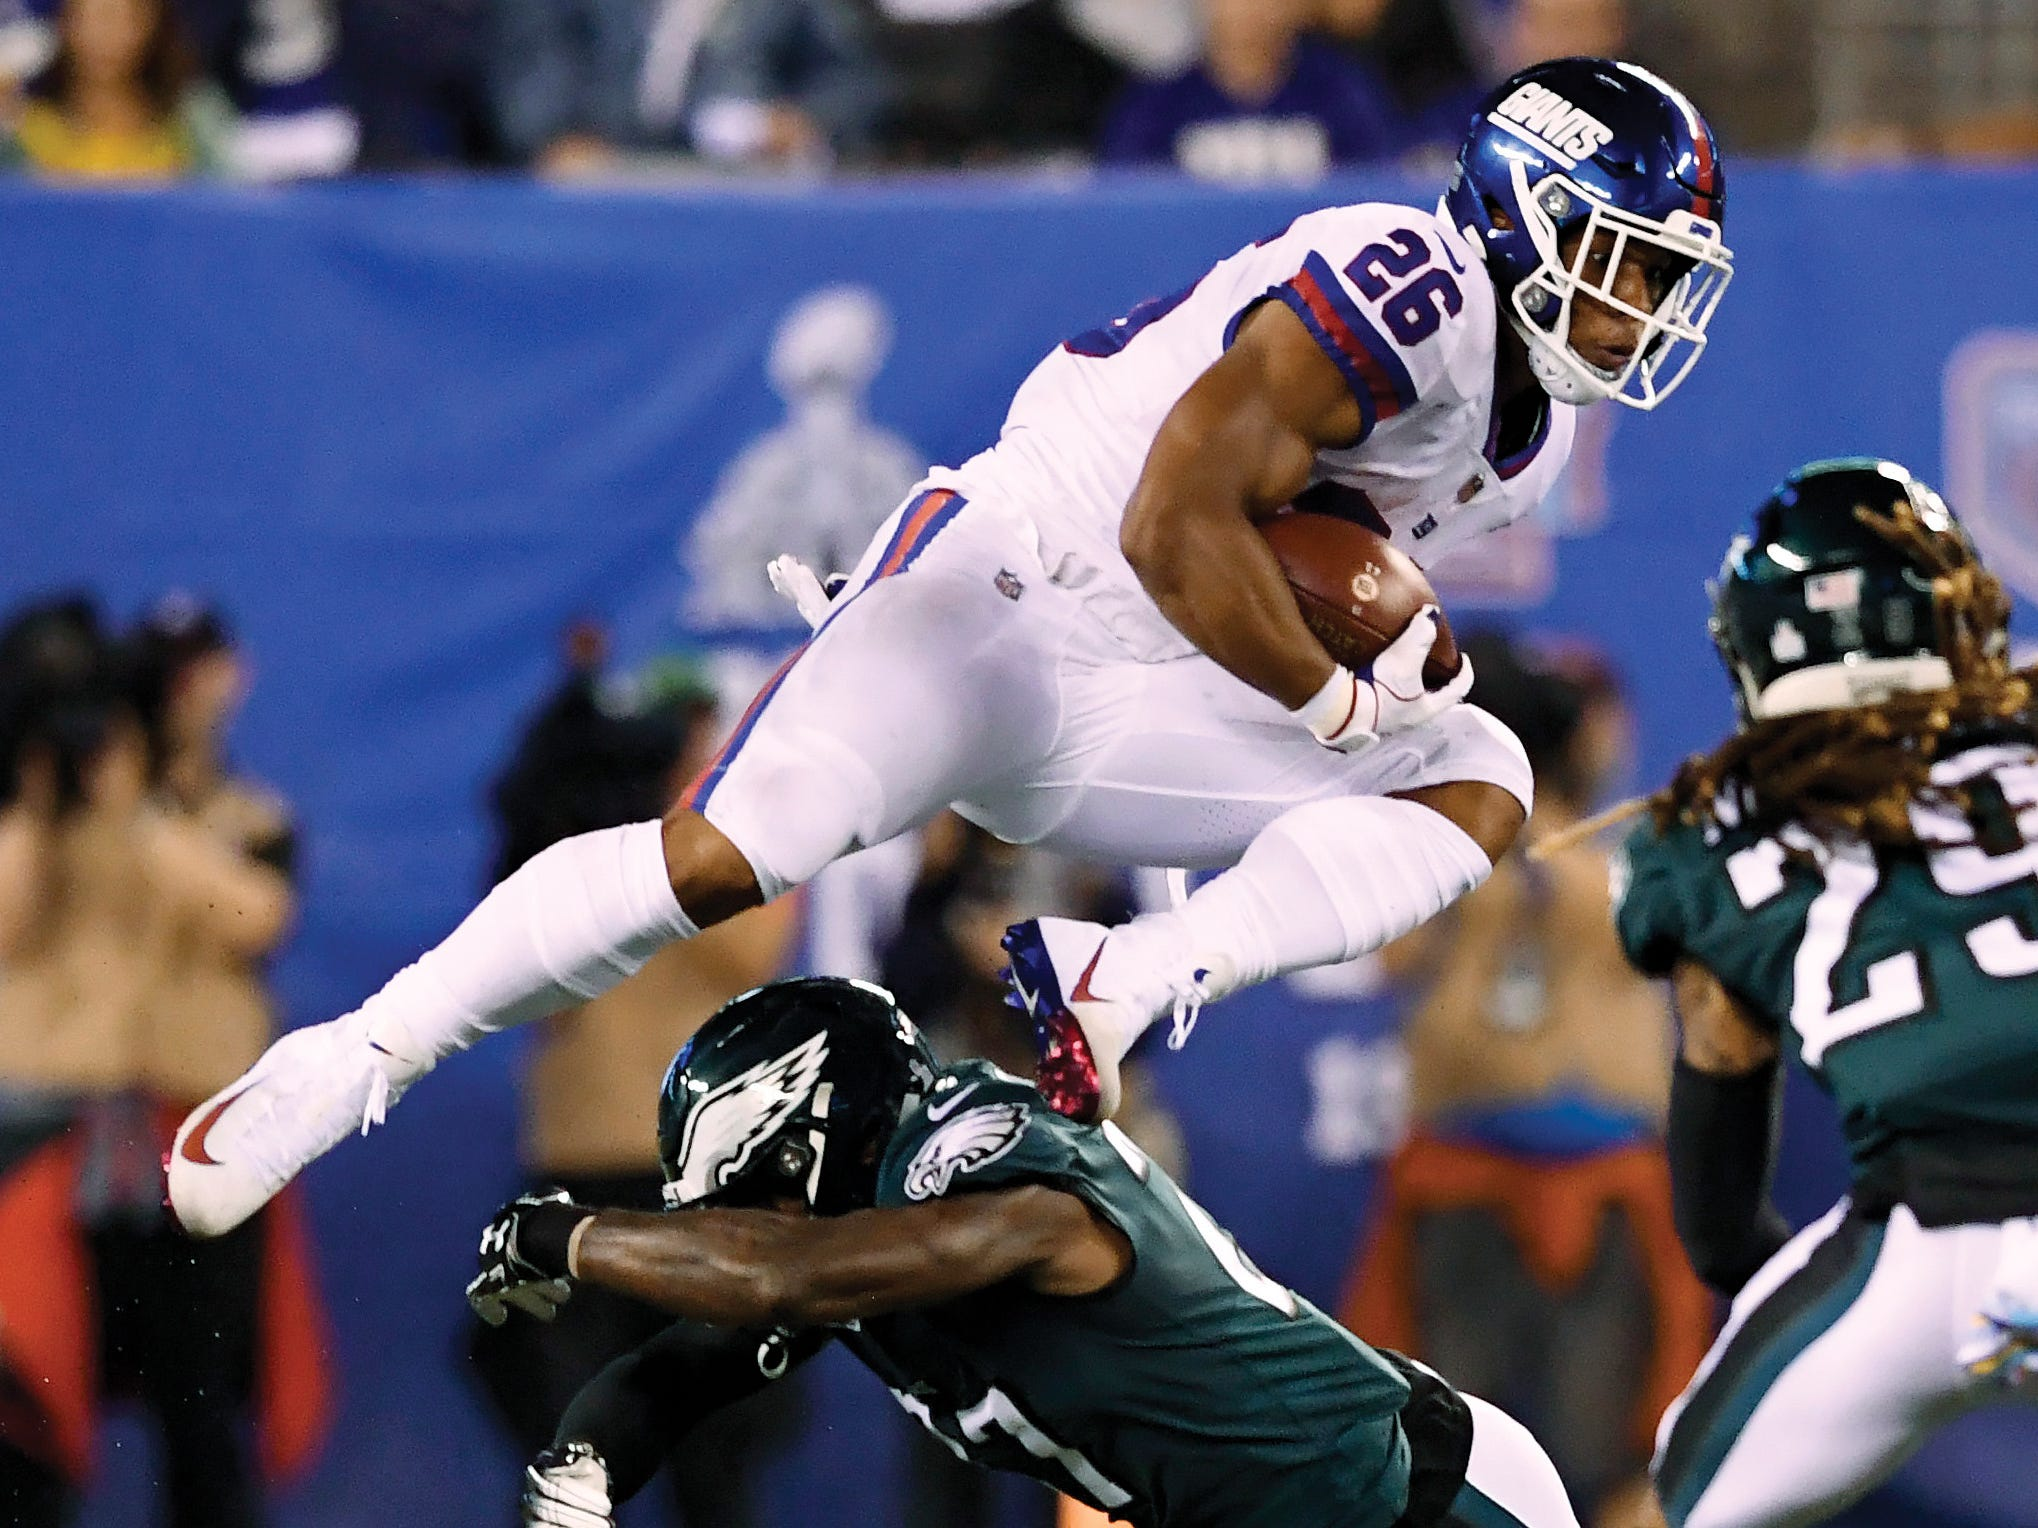 New York Giants running back Saquon Barkley (26) jumps over an Eagles defender in the first half. The New York Giants face the Philadelphia Eagles on Thursday, Oct. 11, 2018, in East Rutherford. (Danielle Parhizkaran/@danielleparhiz)